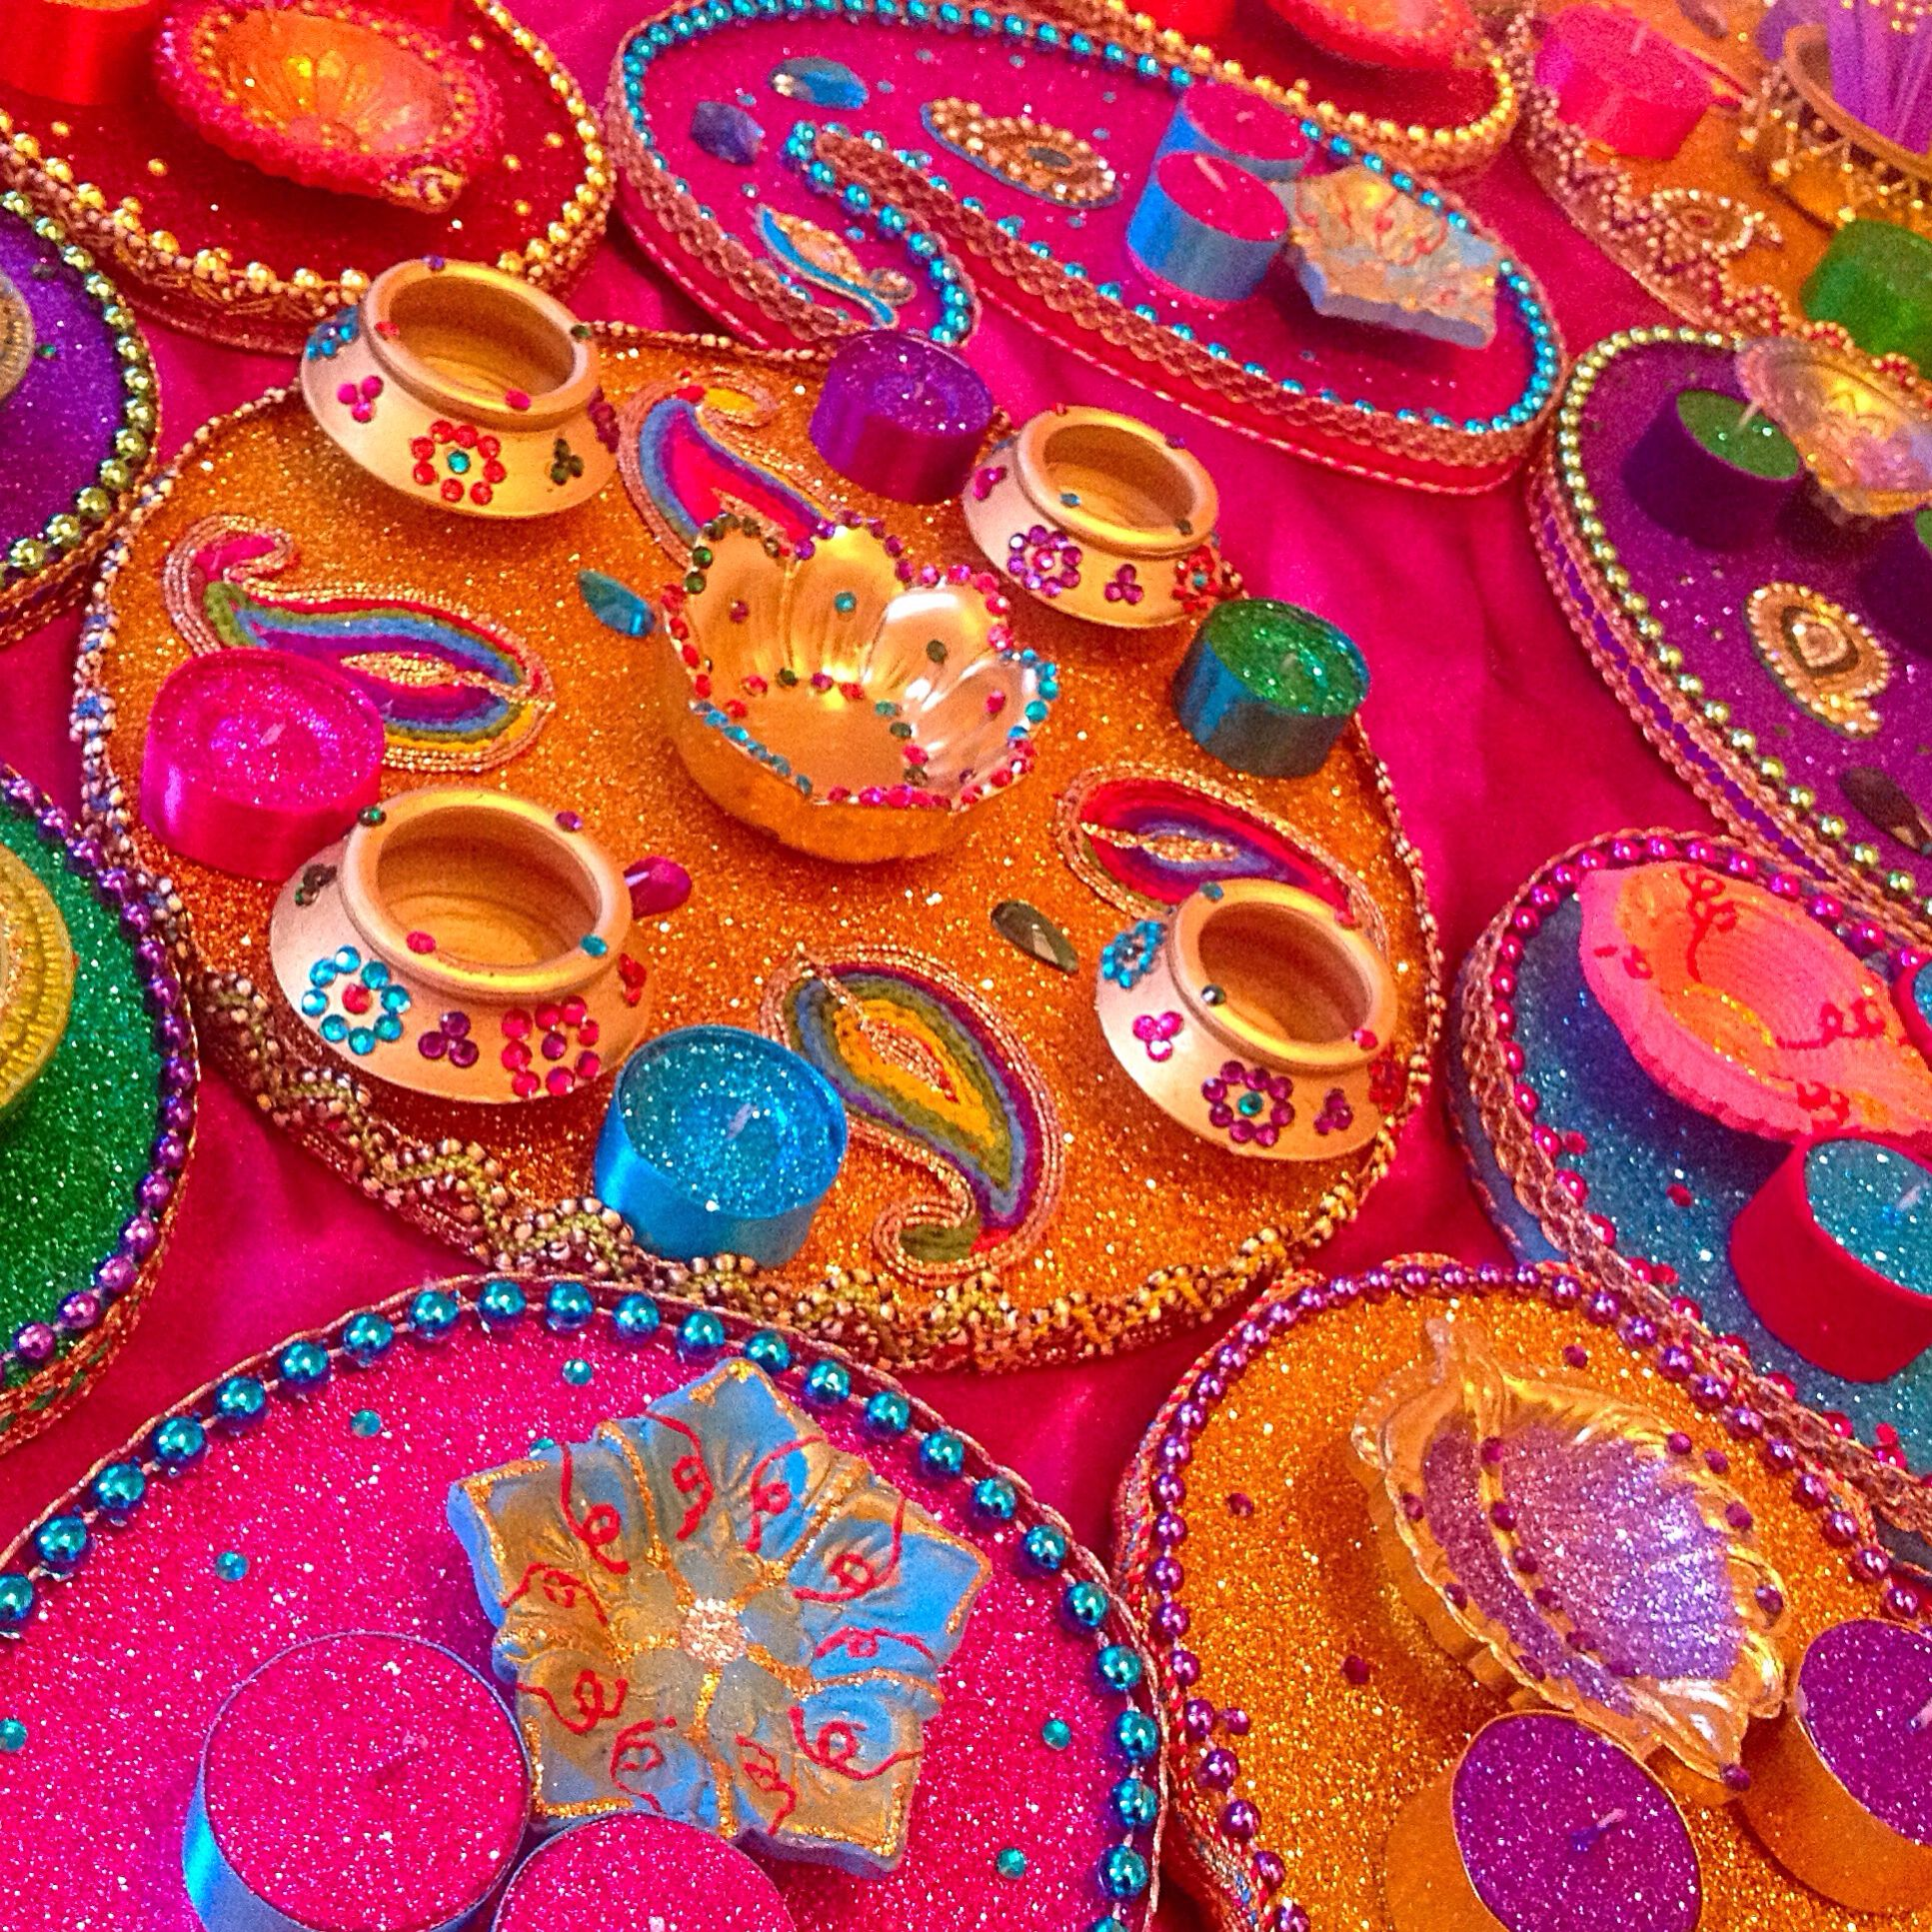 Decoration Of Mehndi Plates : Colourful mehndi trays see my facebook page